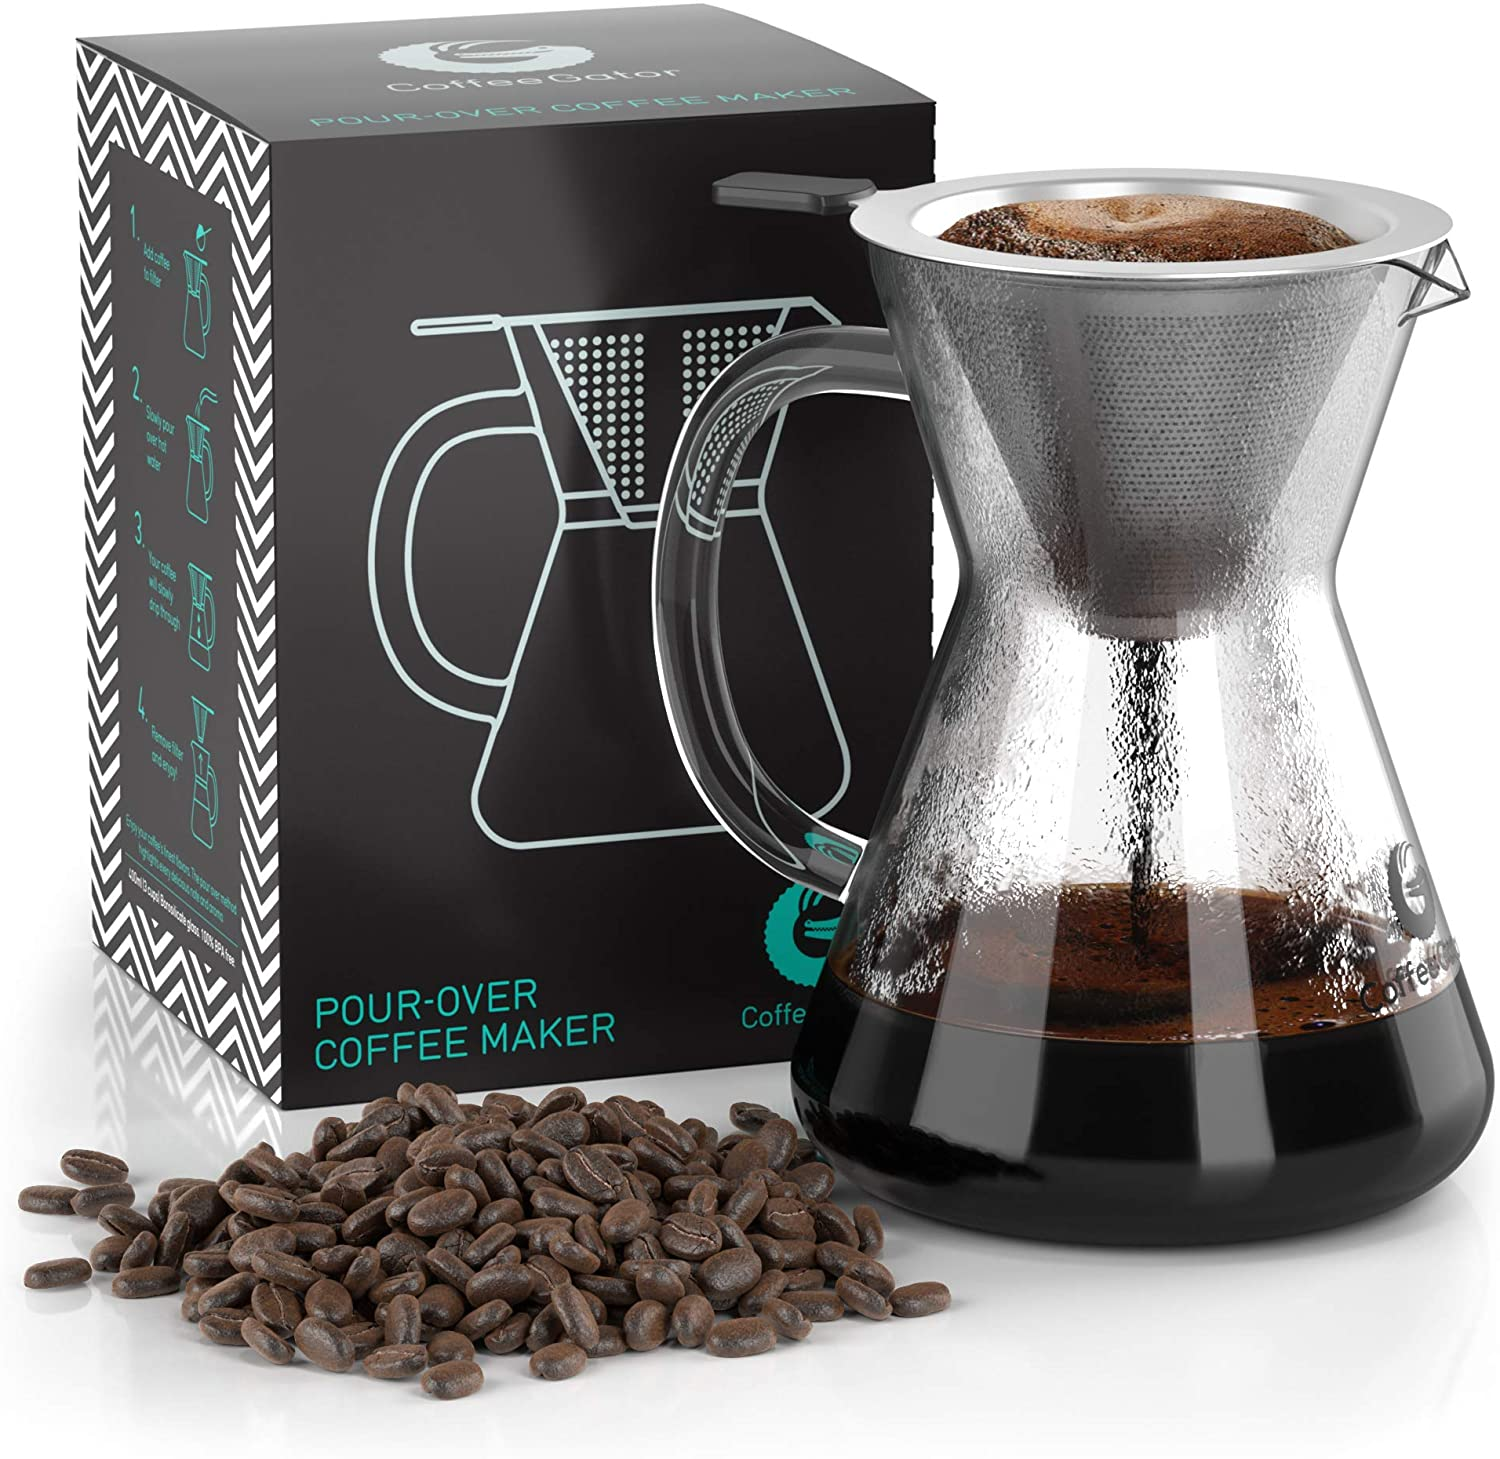 Pour Over Coffee Maker - Great Coffee Made Simple - 3 Cup Hand Drip Coffee Maker With Stainless Steel Filter